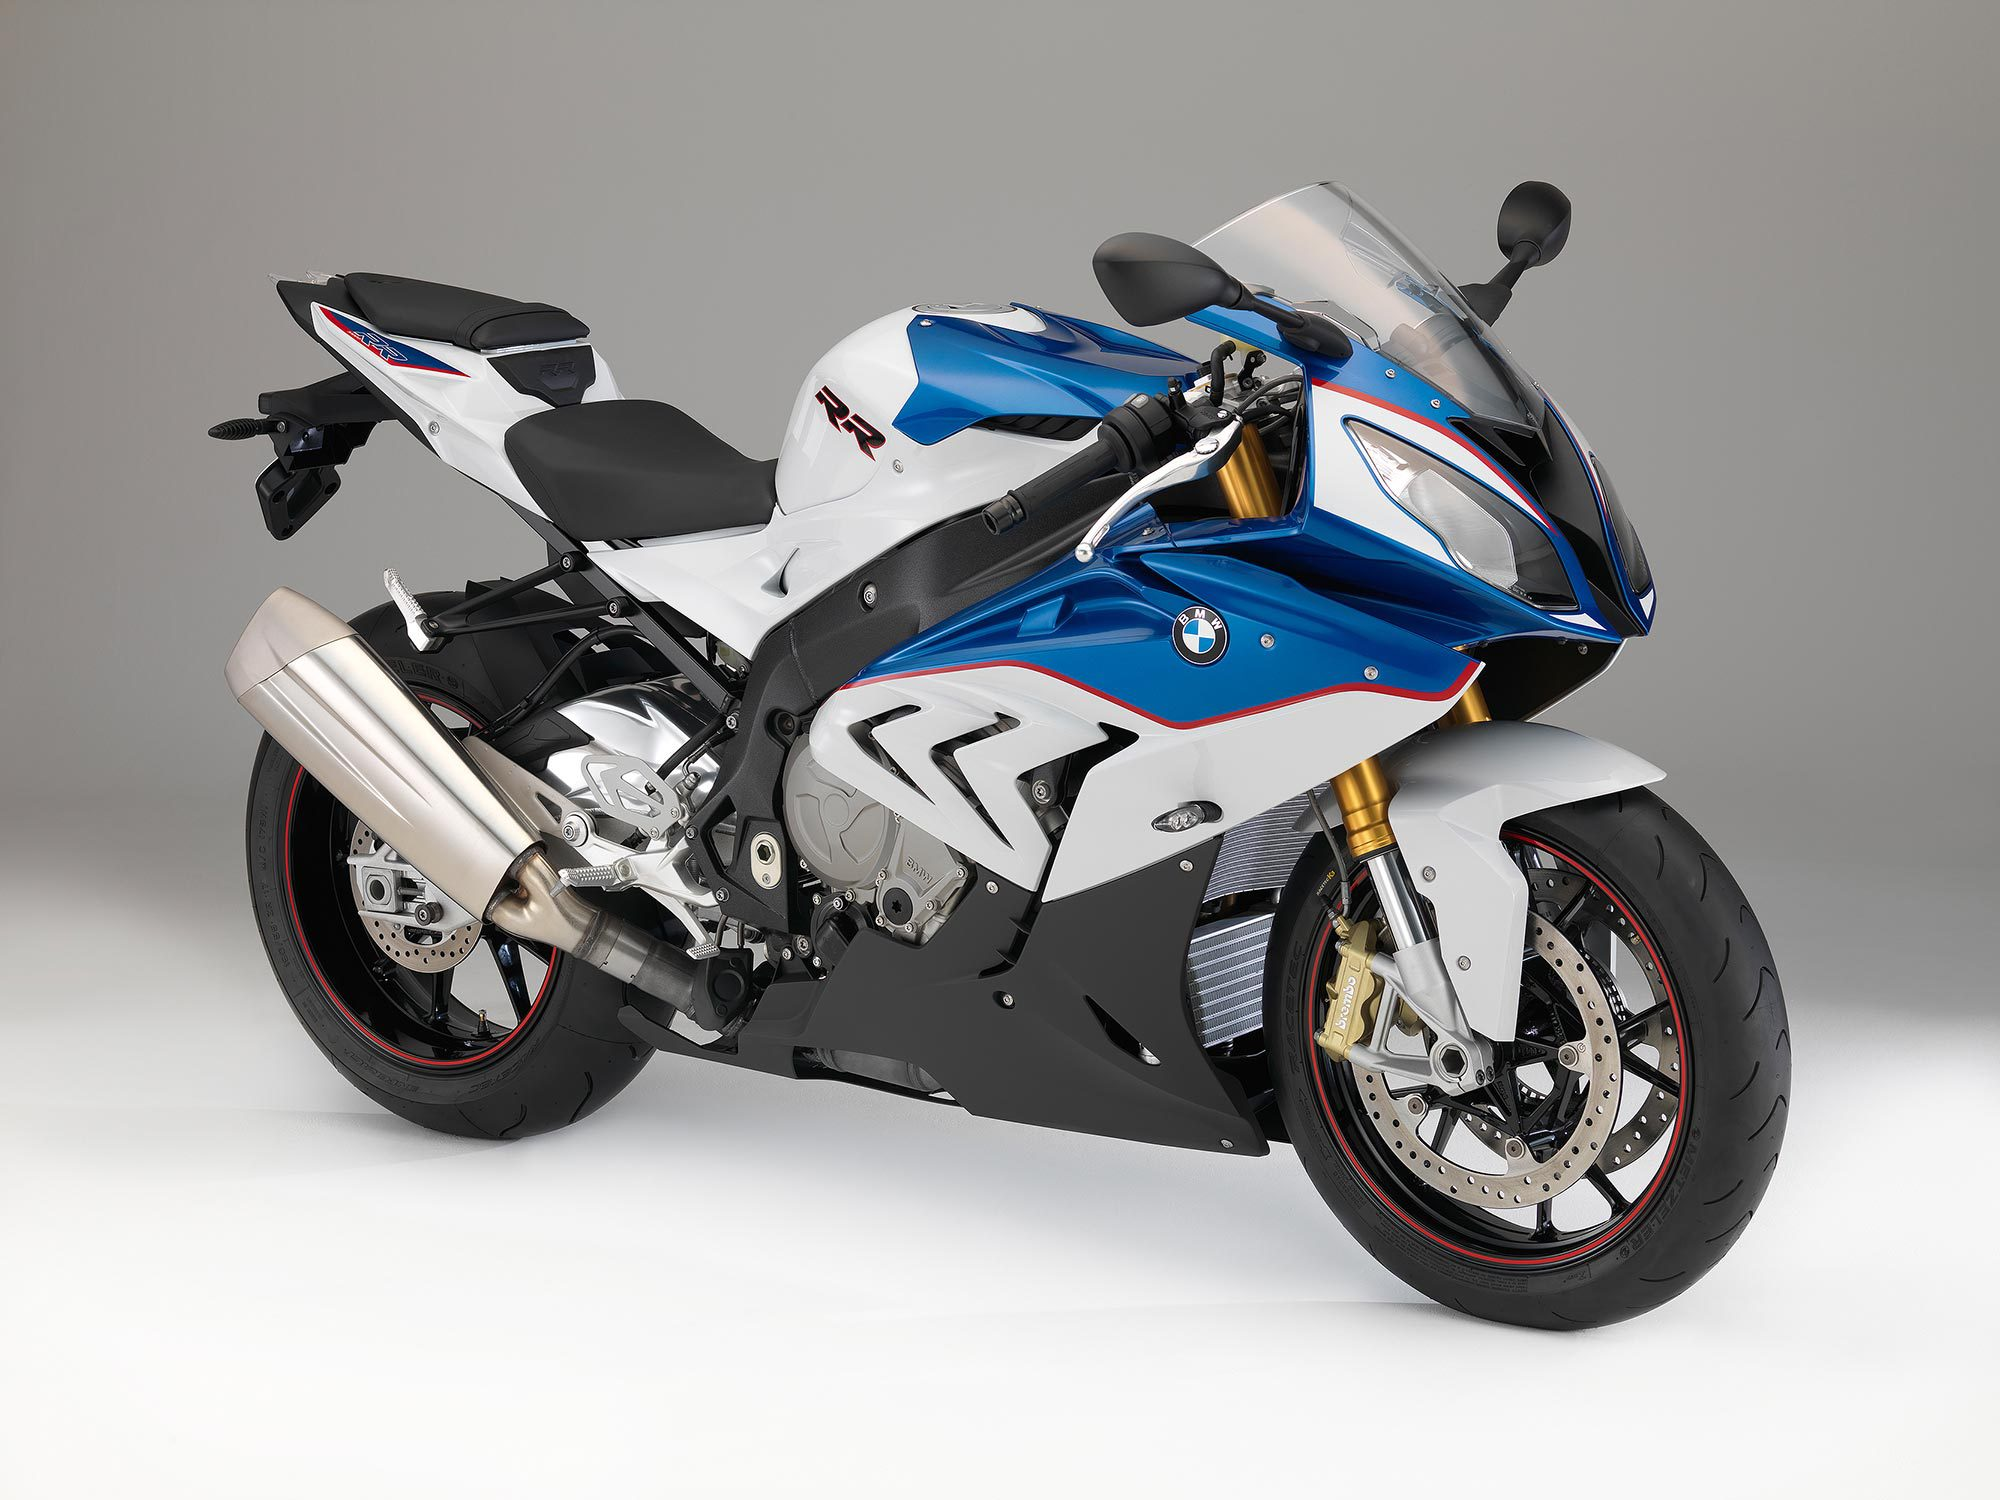 BMW S 1000 RR – best import motorcycle